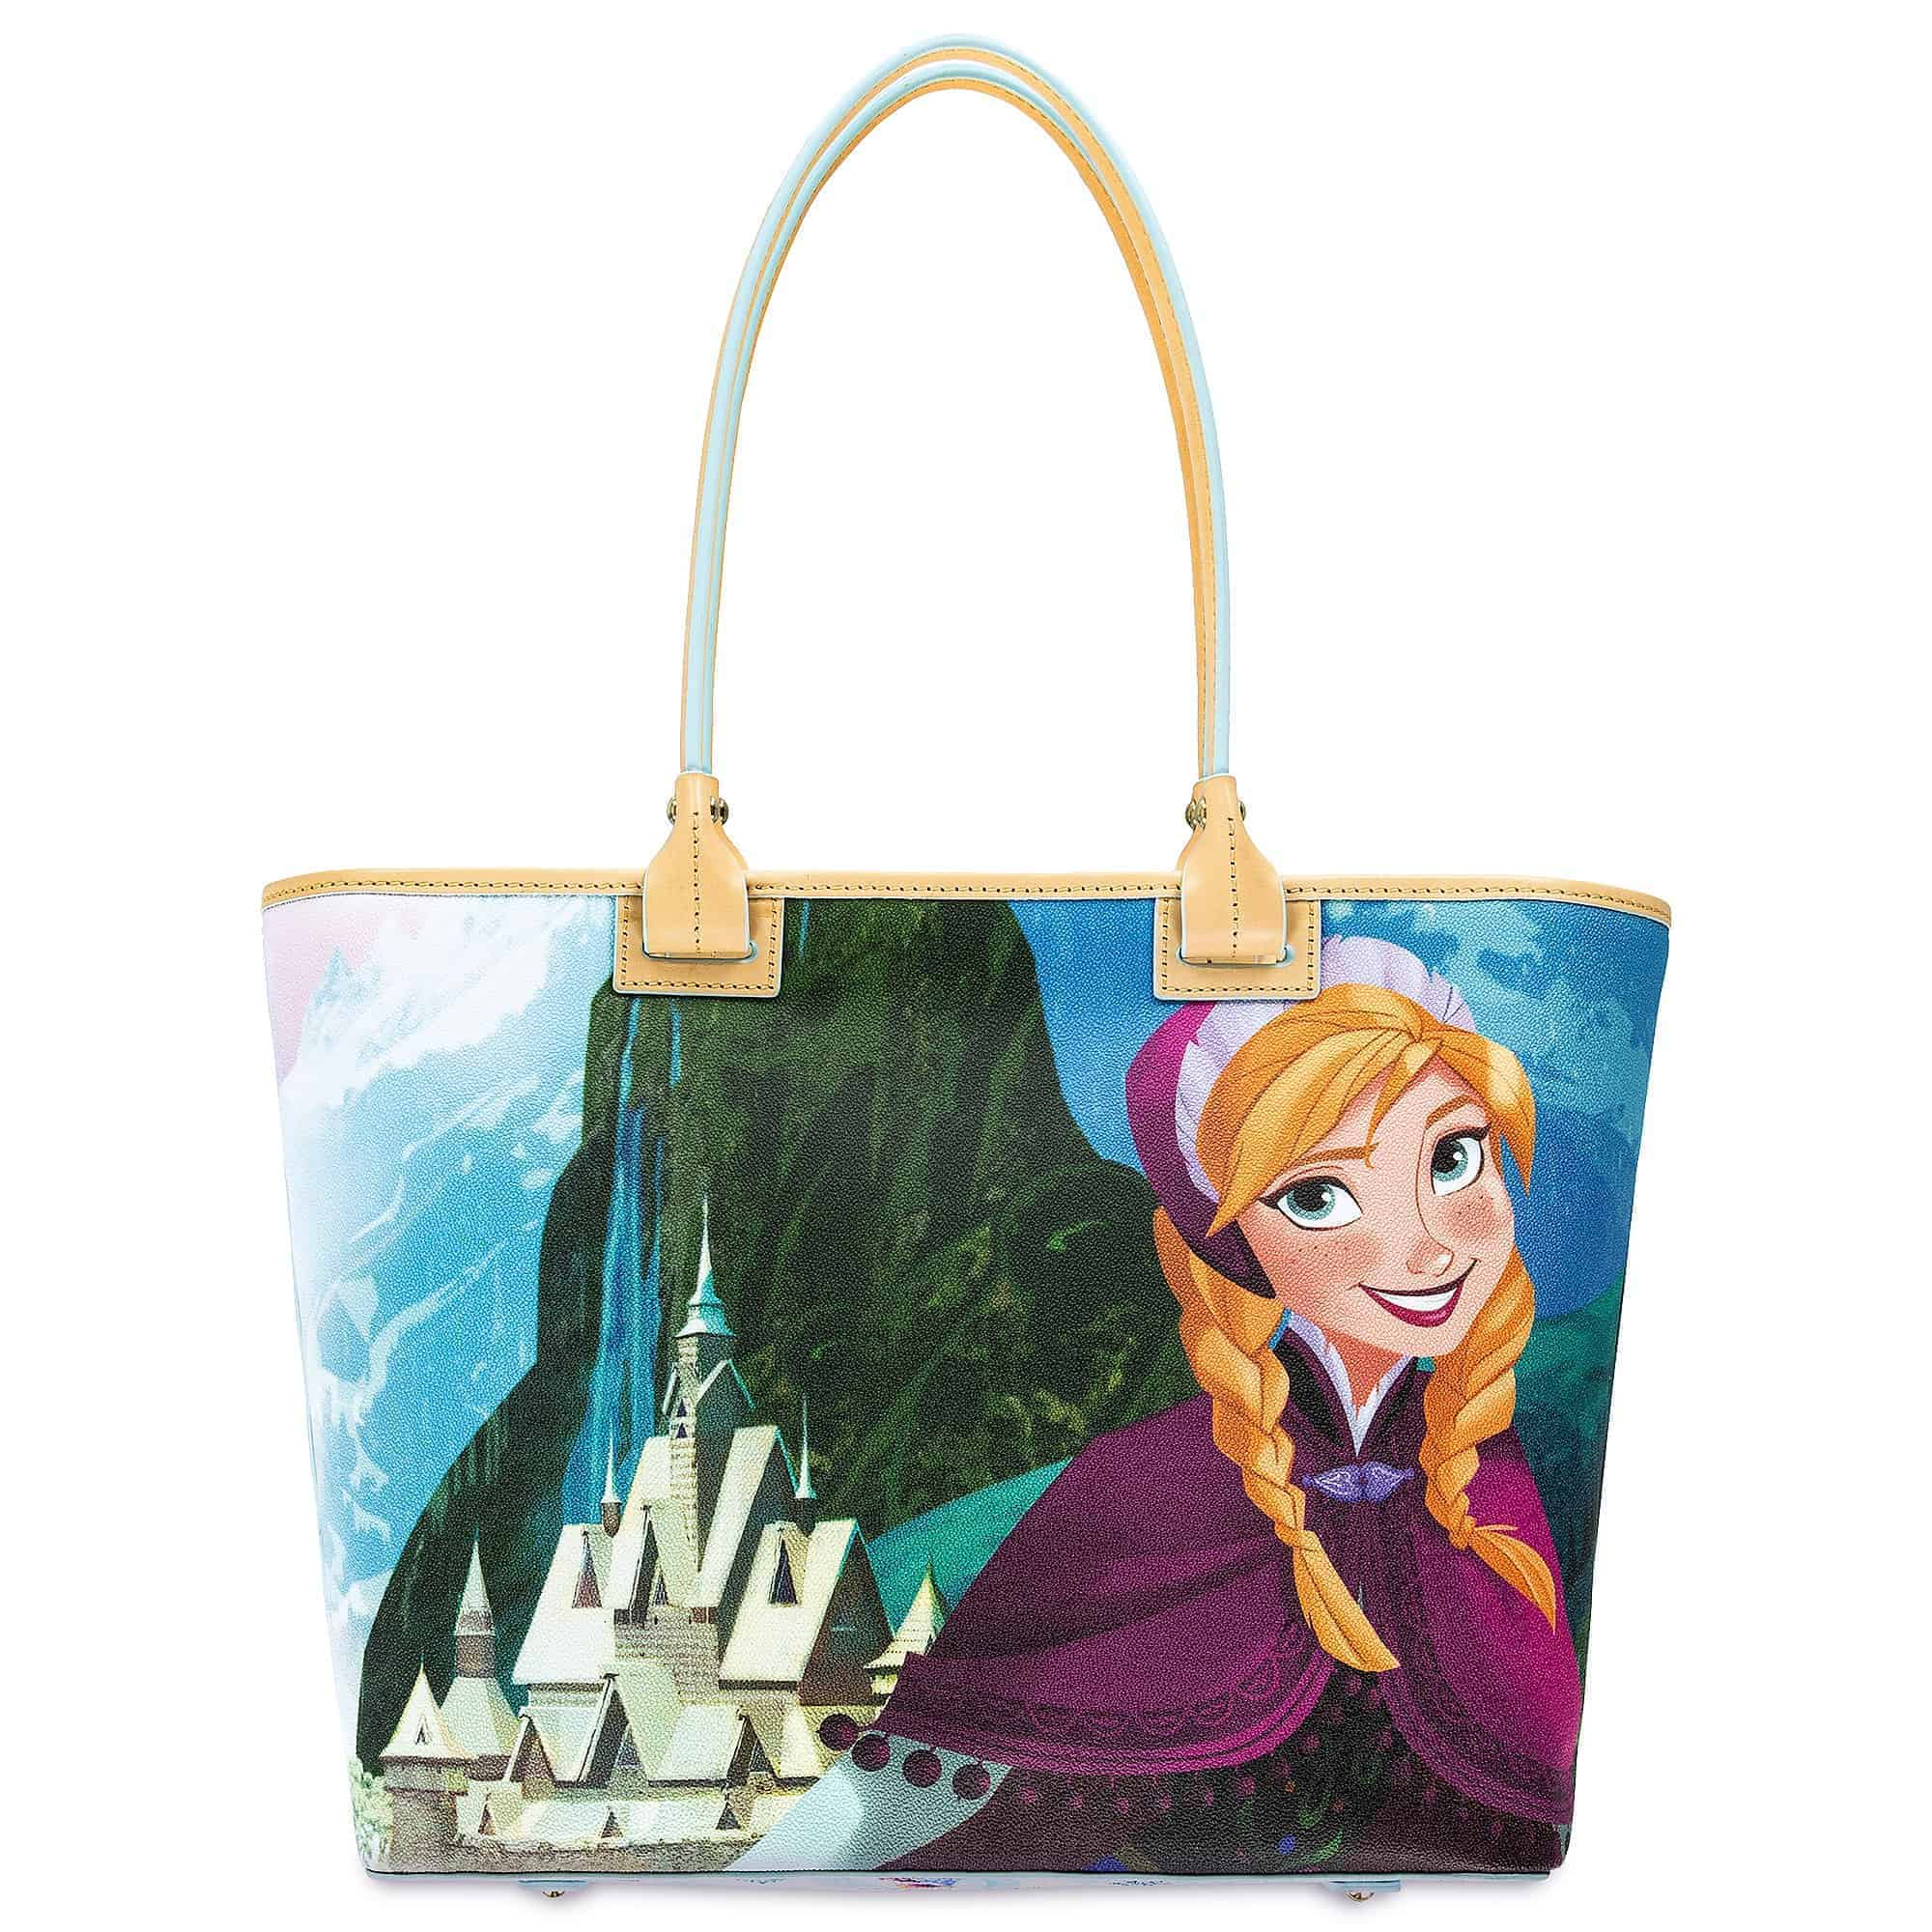 Frozen Tote (back) by Dooney & Bourke